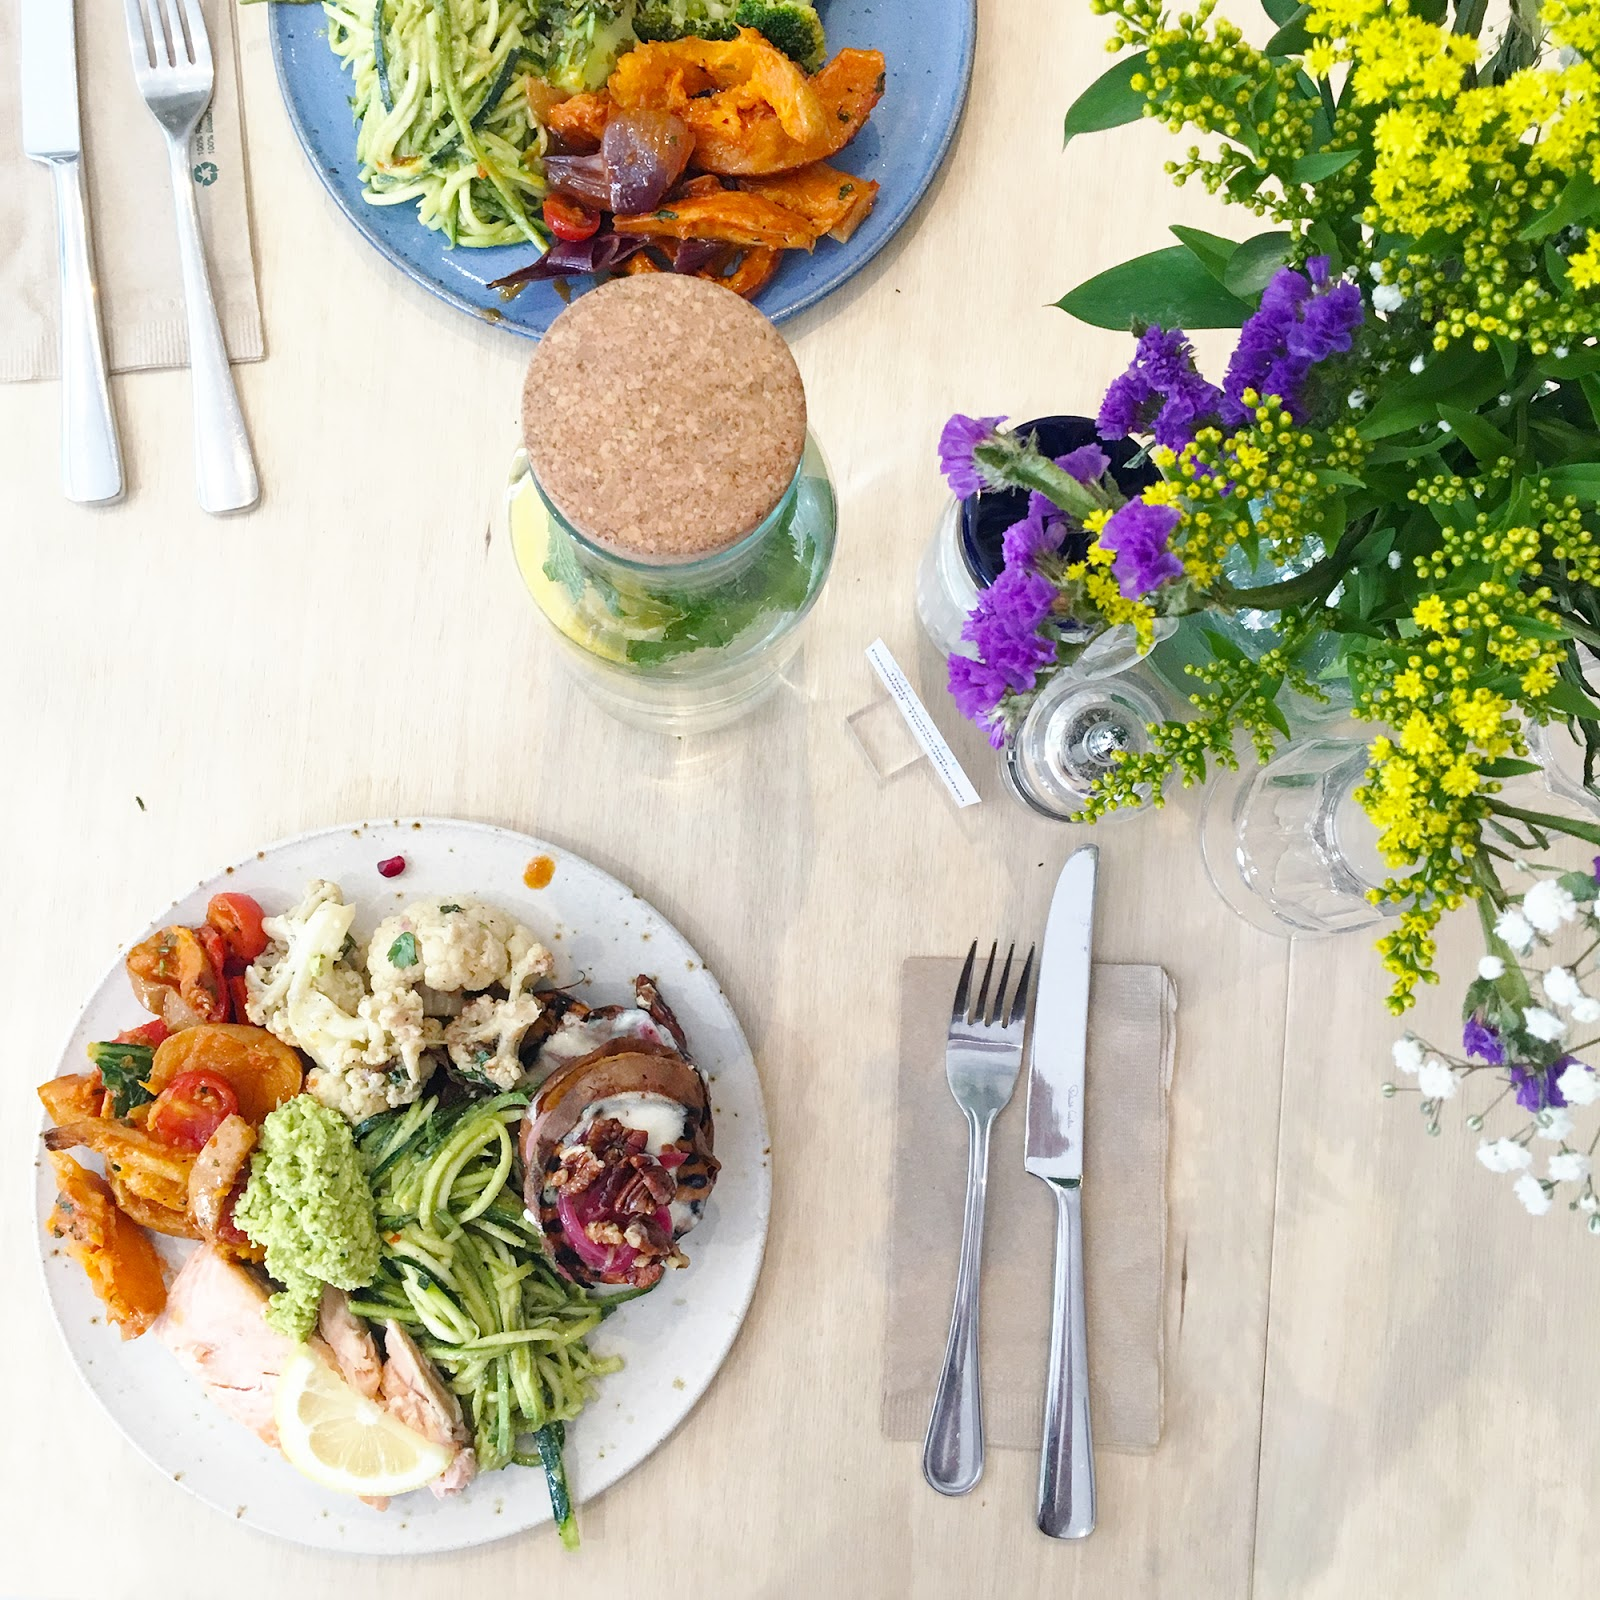 Lunch salads at the detox kitchen in London